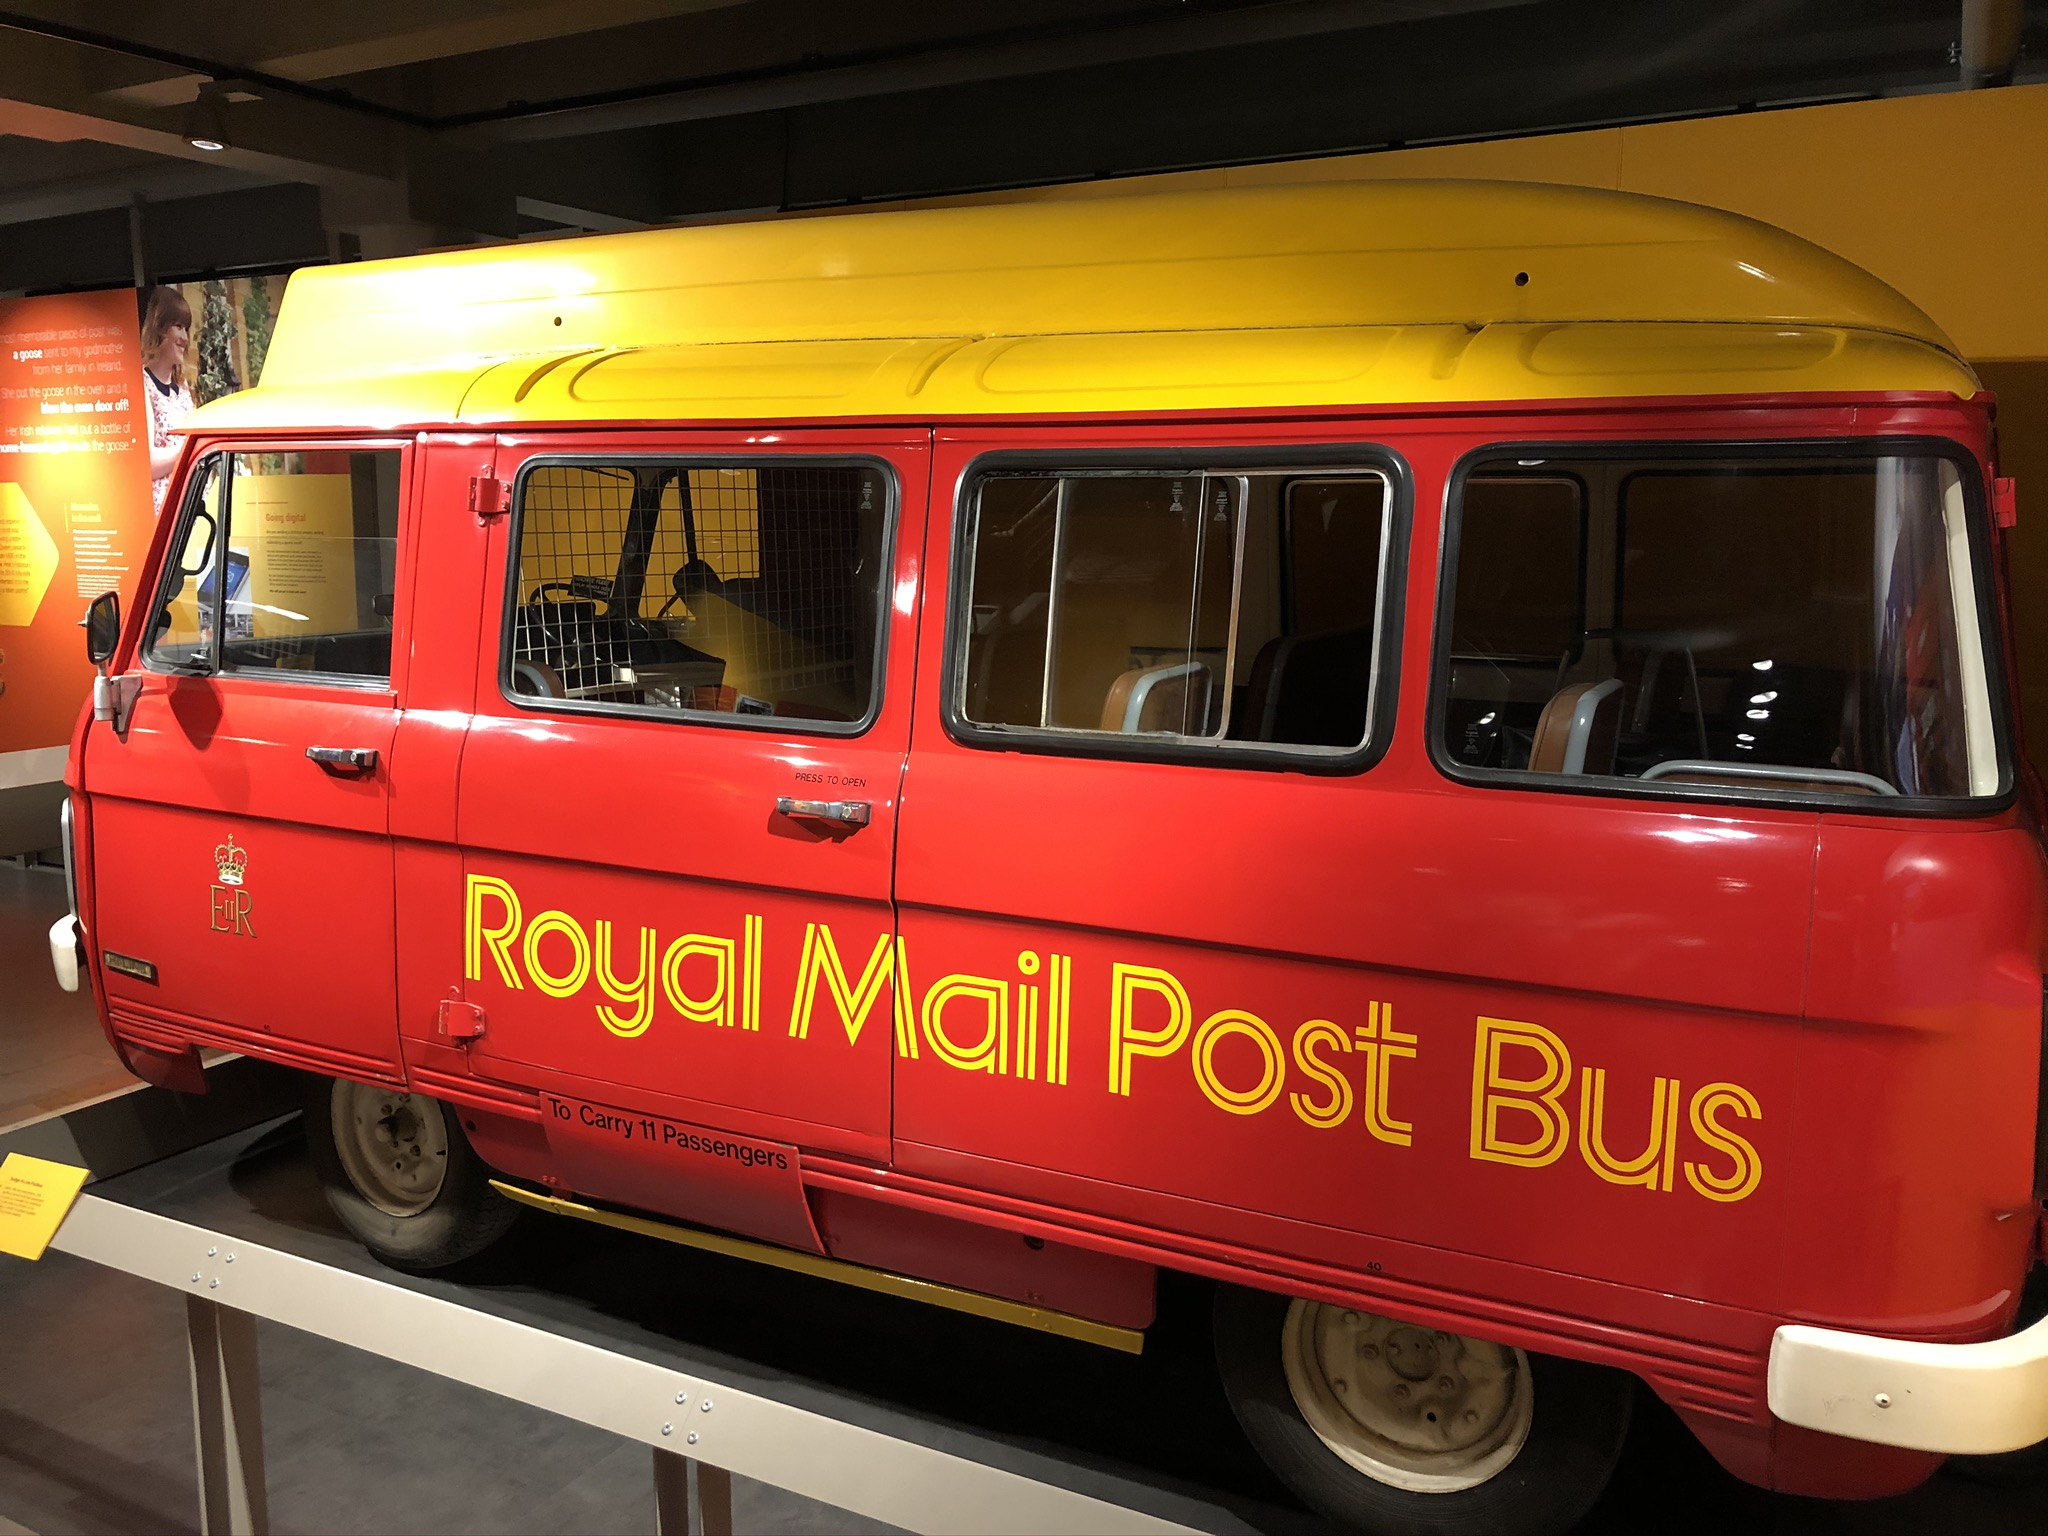 Post van and local bus!